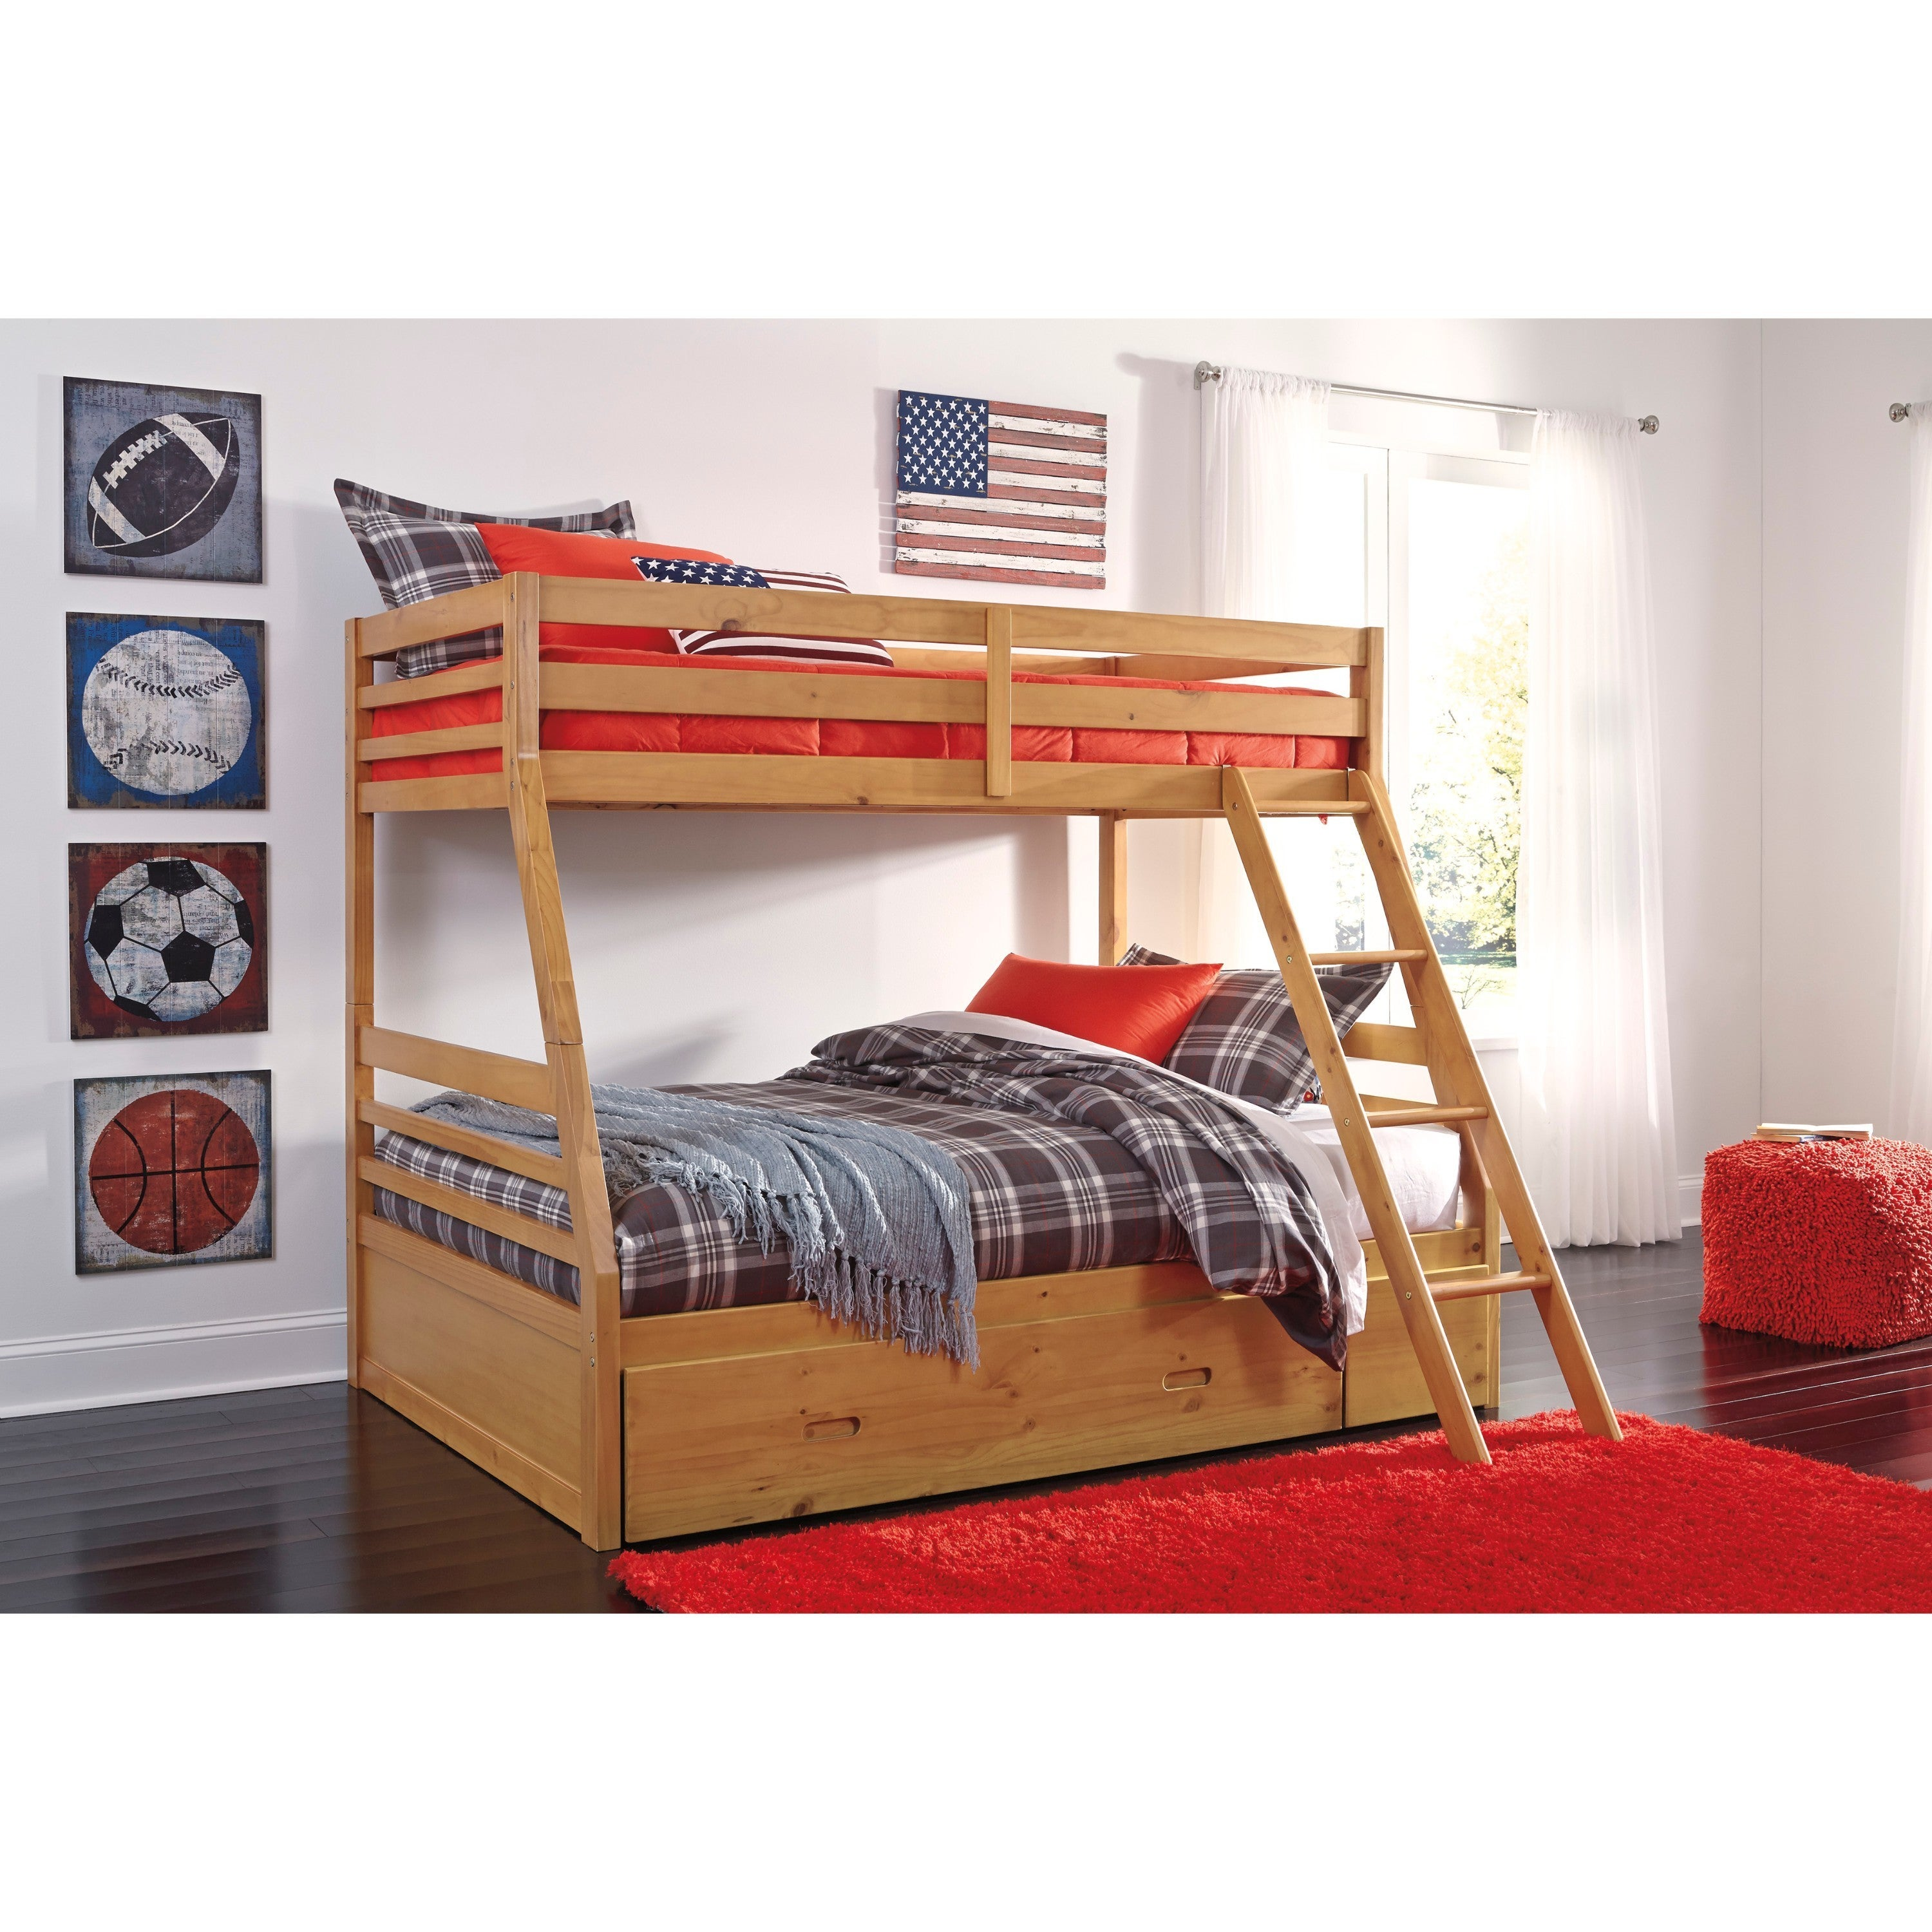 Shop Signature Design by Ashley Hallytown Light Brown Twin Bunk Bed